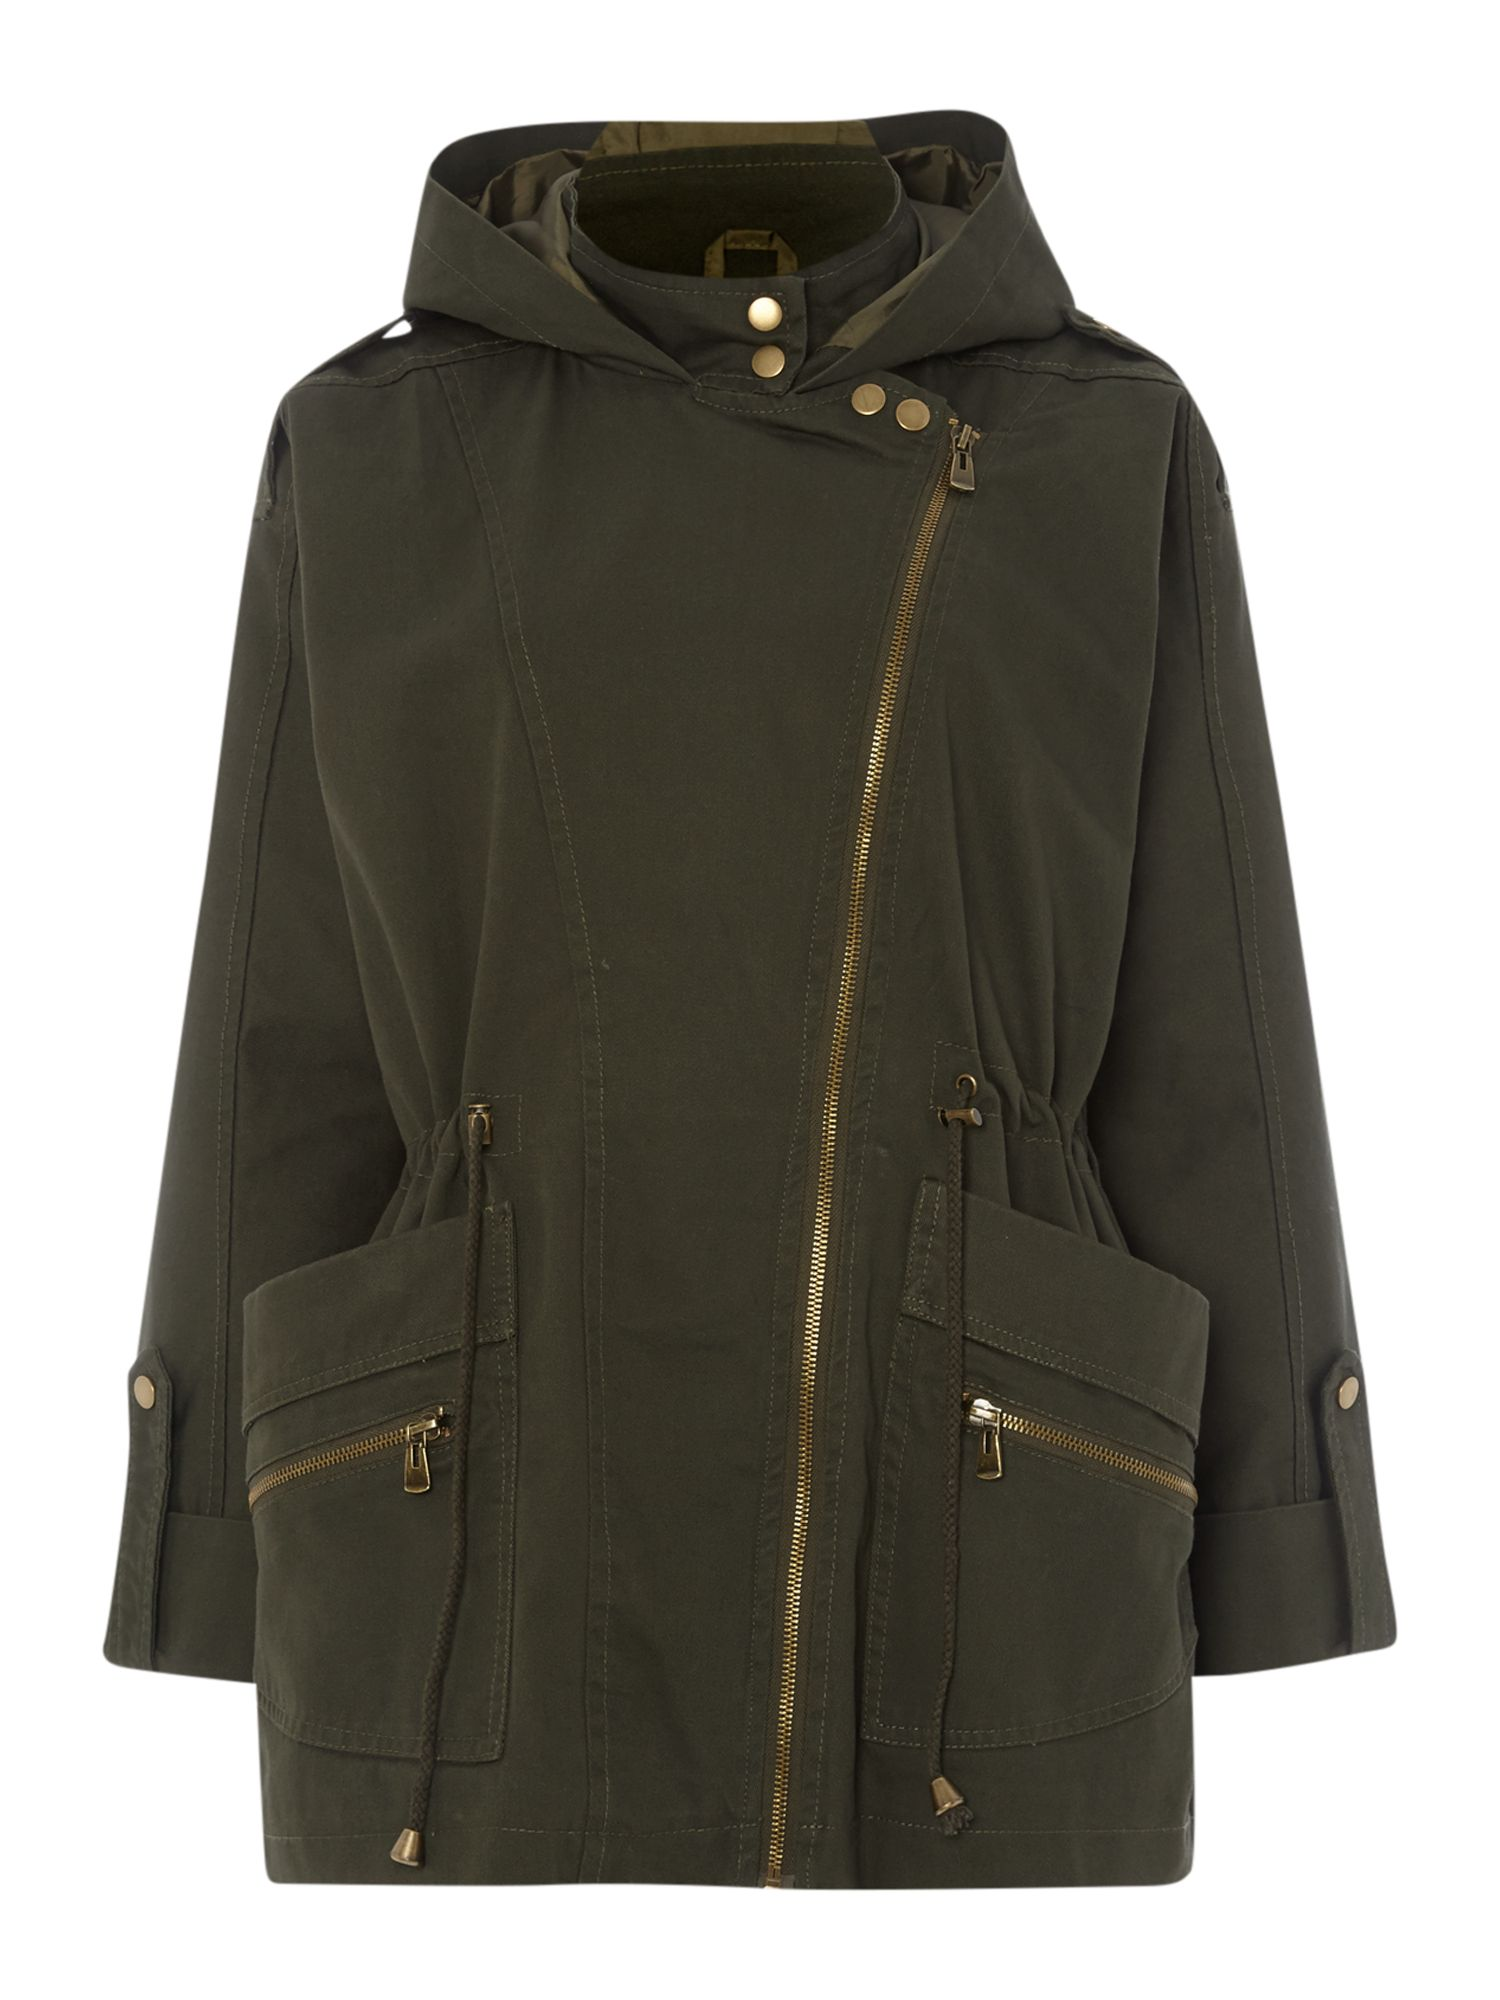 Lightweight hooded parka jacket